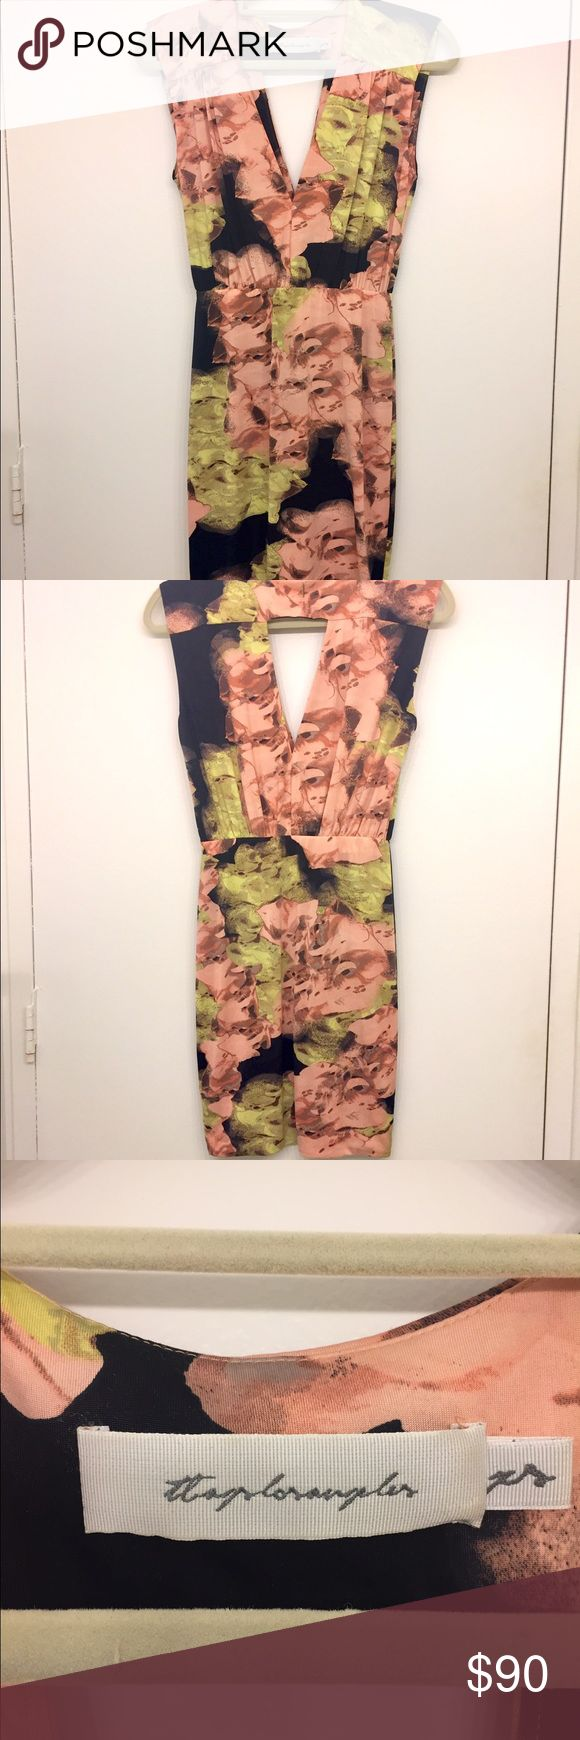 TBAGS LOS ANGELES Floral Body-con Dress Beautiful blurred floral body-con with a deep v neck and keyhole back.  Self lined ITY, smooth hand.  Only worn one or two times, still in brand new condition. TBAGSLOSANGELES Dresses Mini